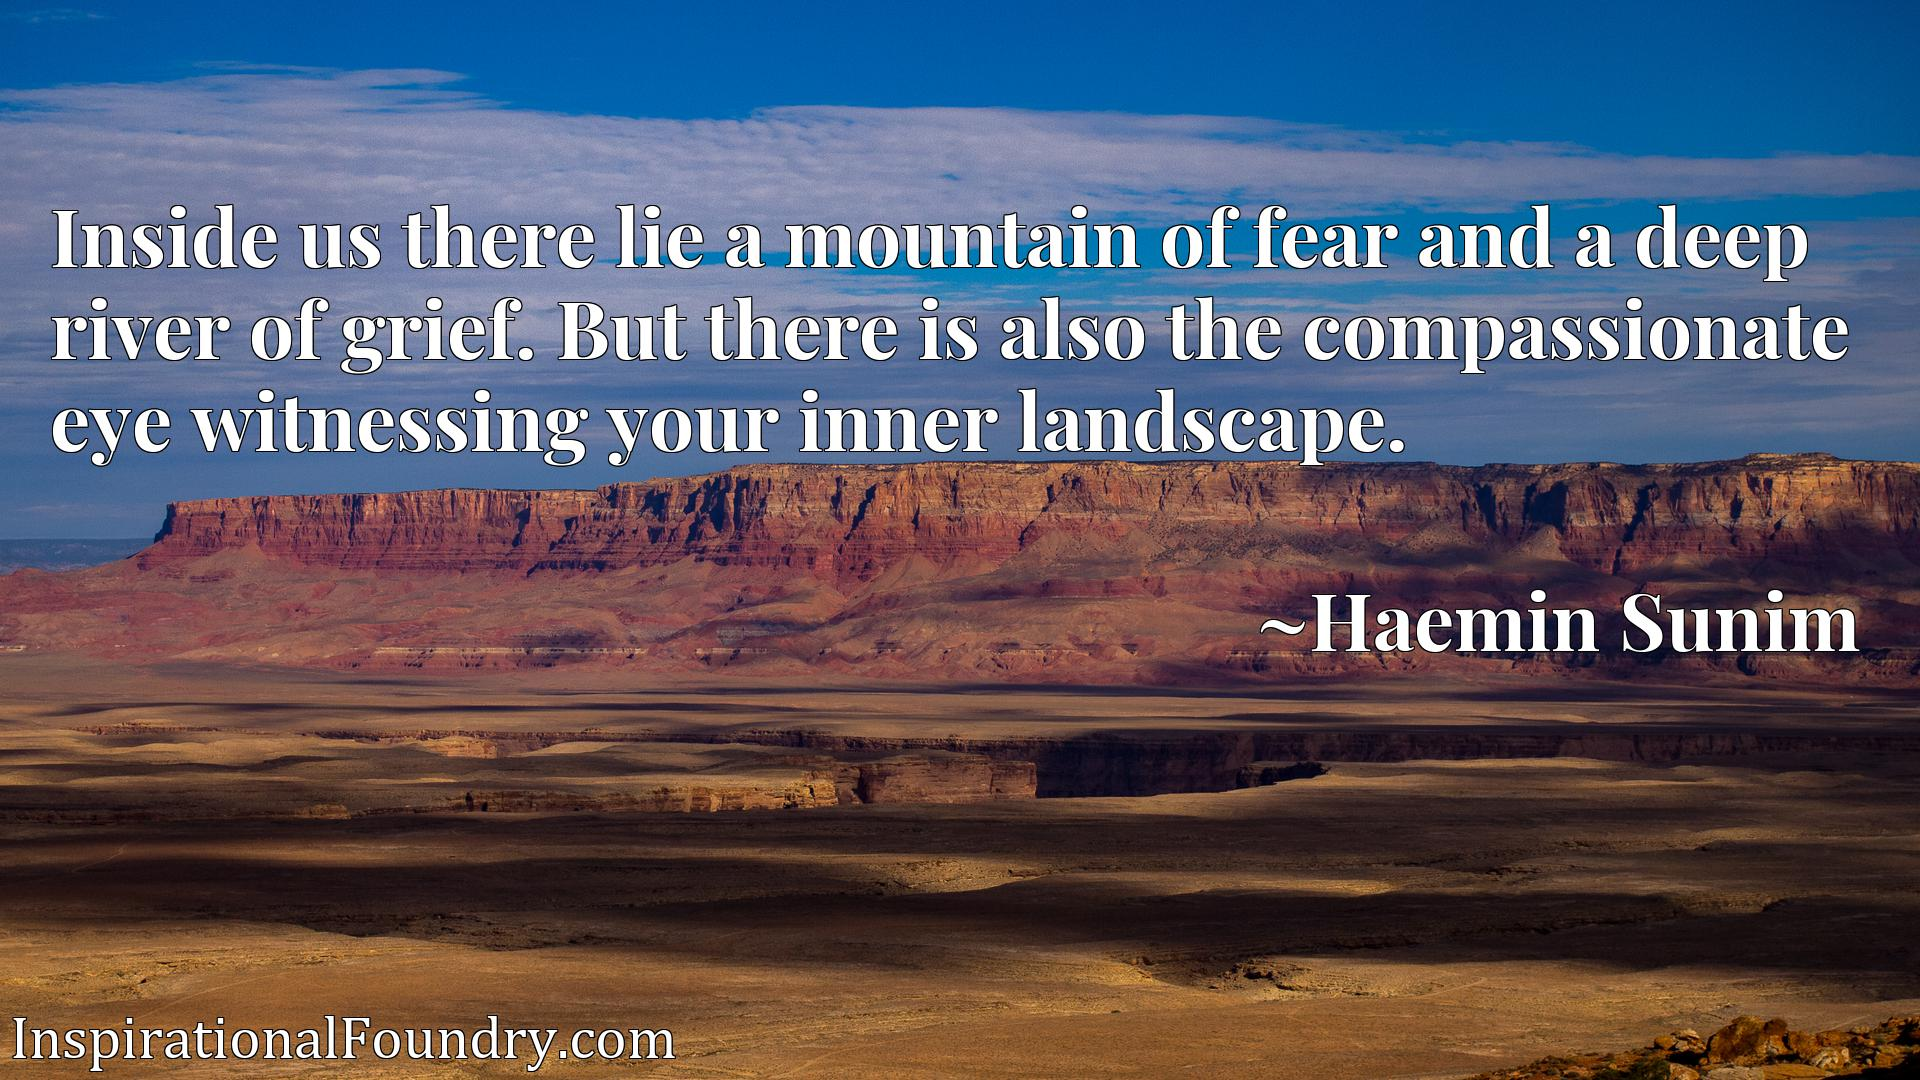 Inside us there lie a mountain of fear and a deep river of grief. But there is also the compassionate eye witnessing your inner landscape.